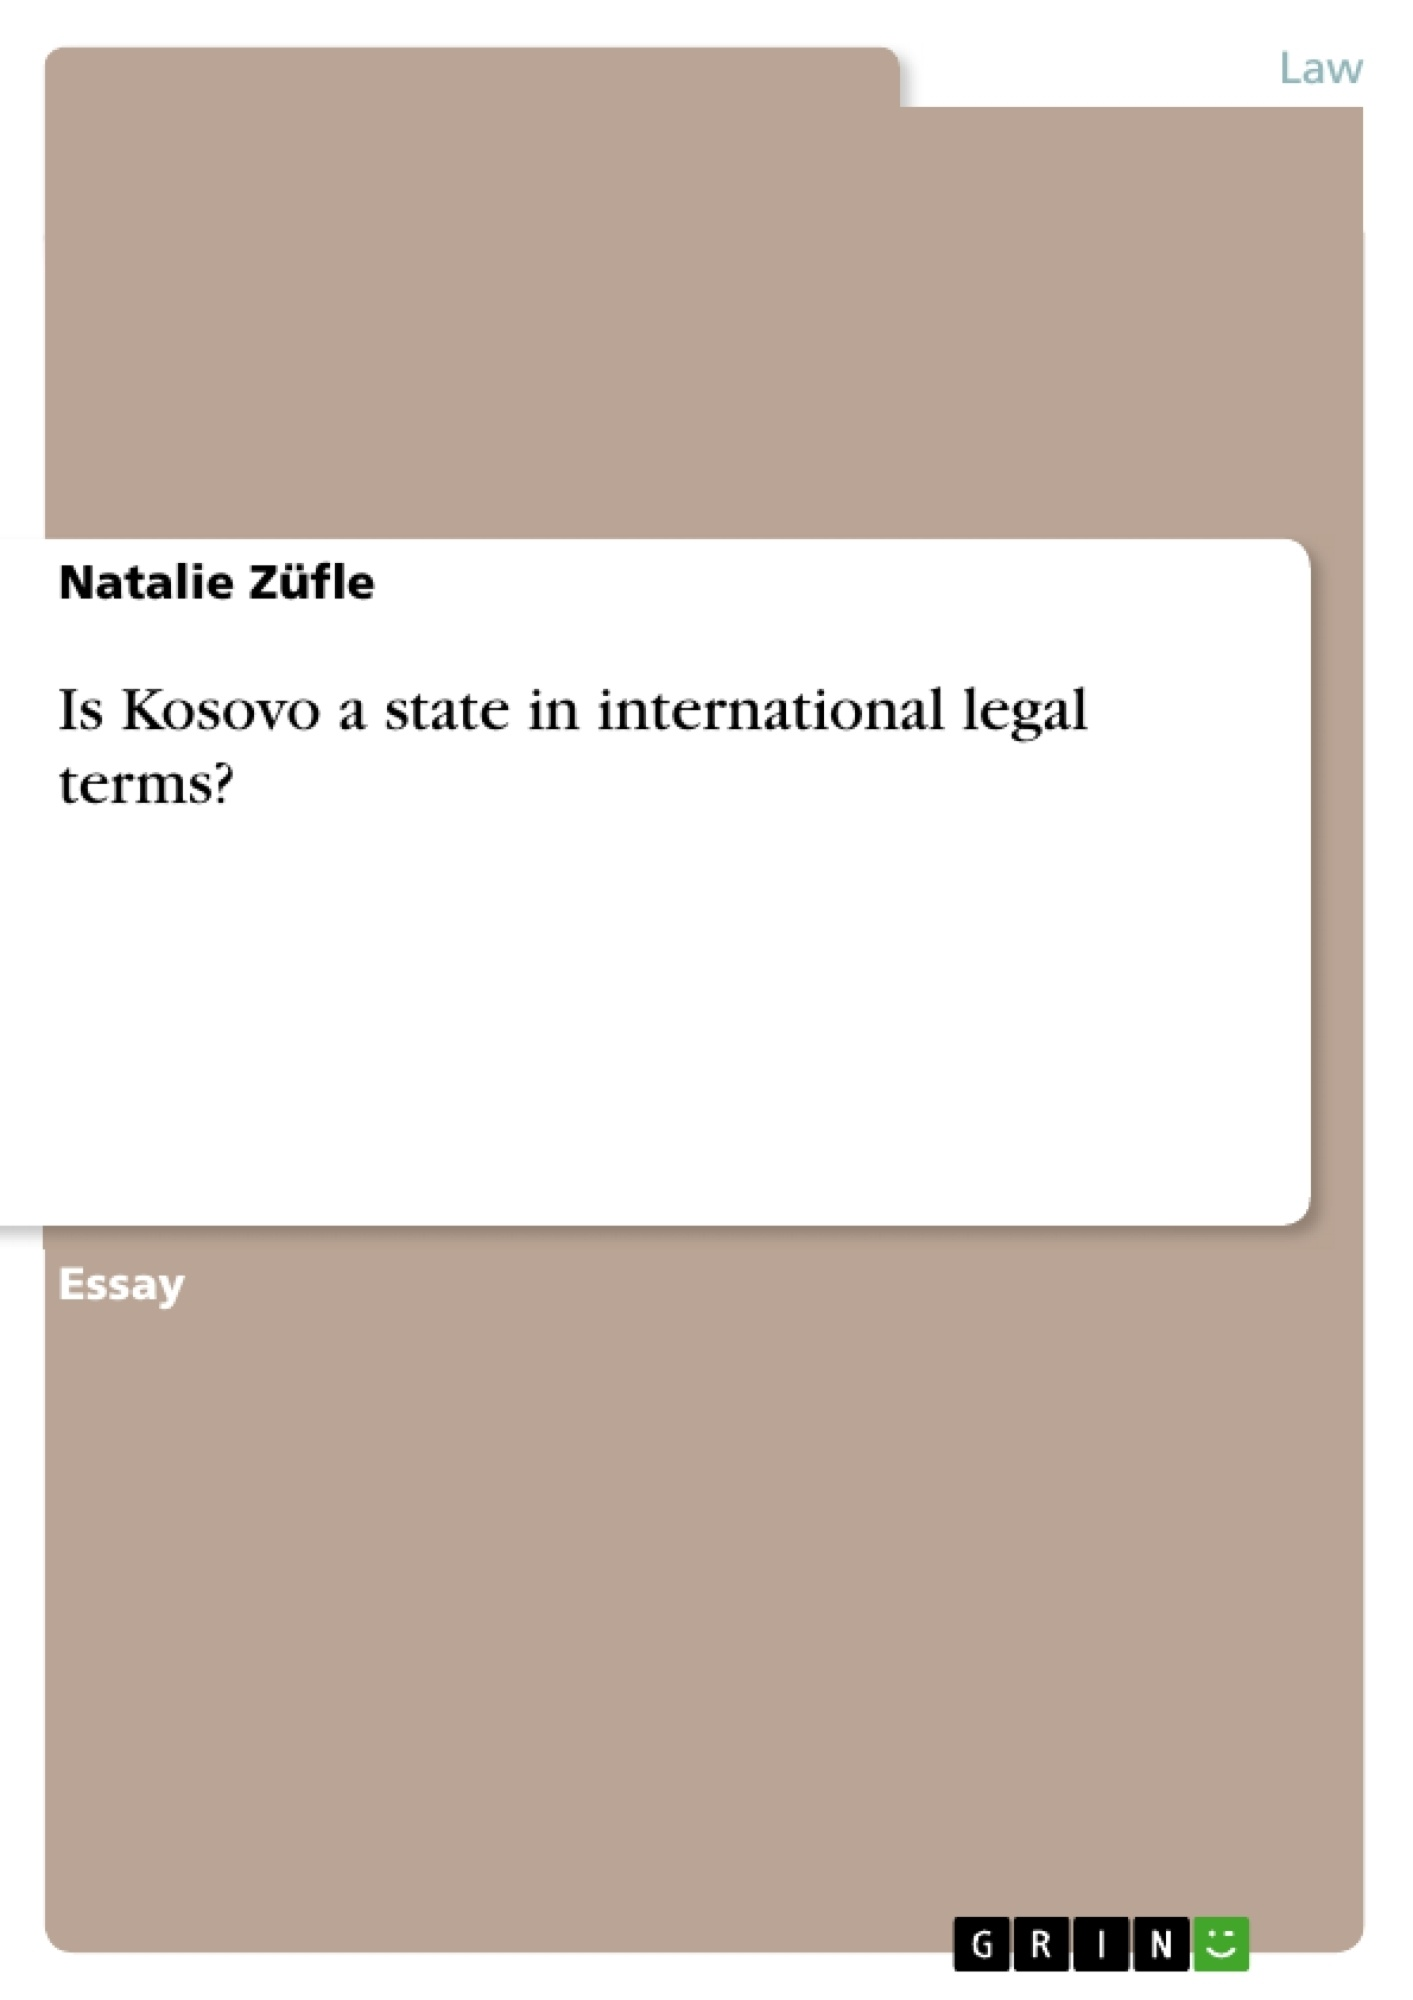 Title: Is Kosovo a state in international legal terms?